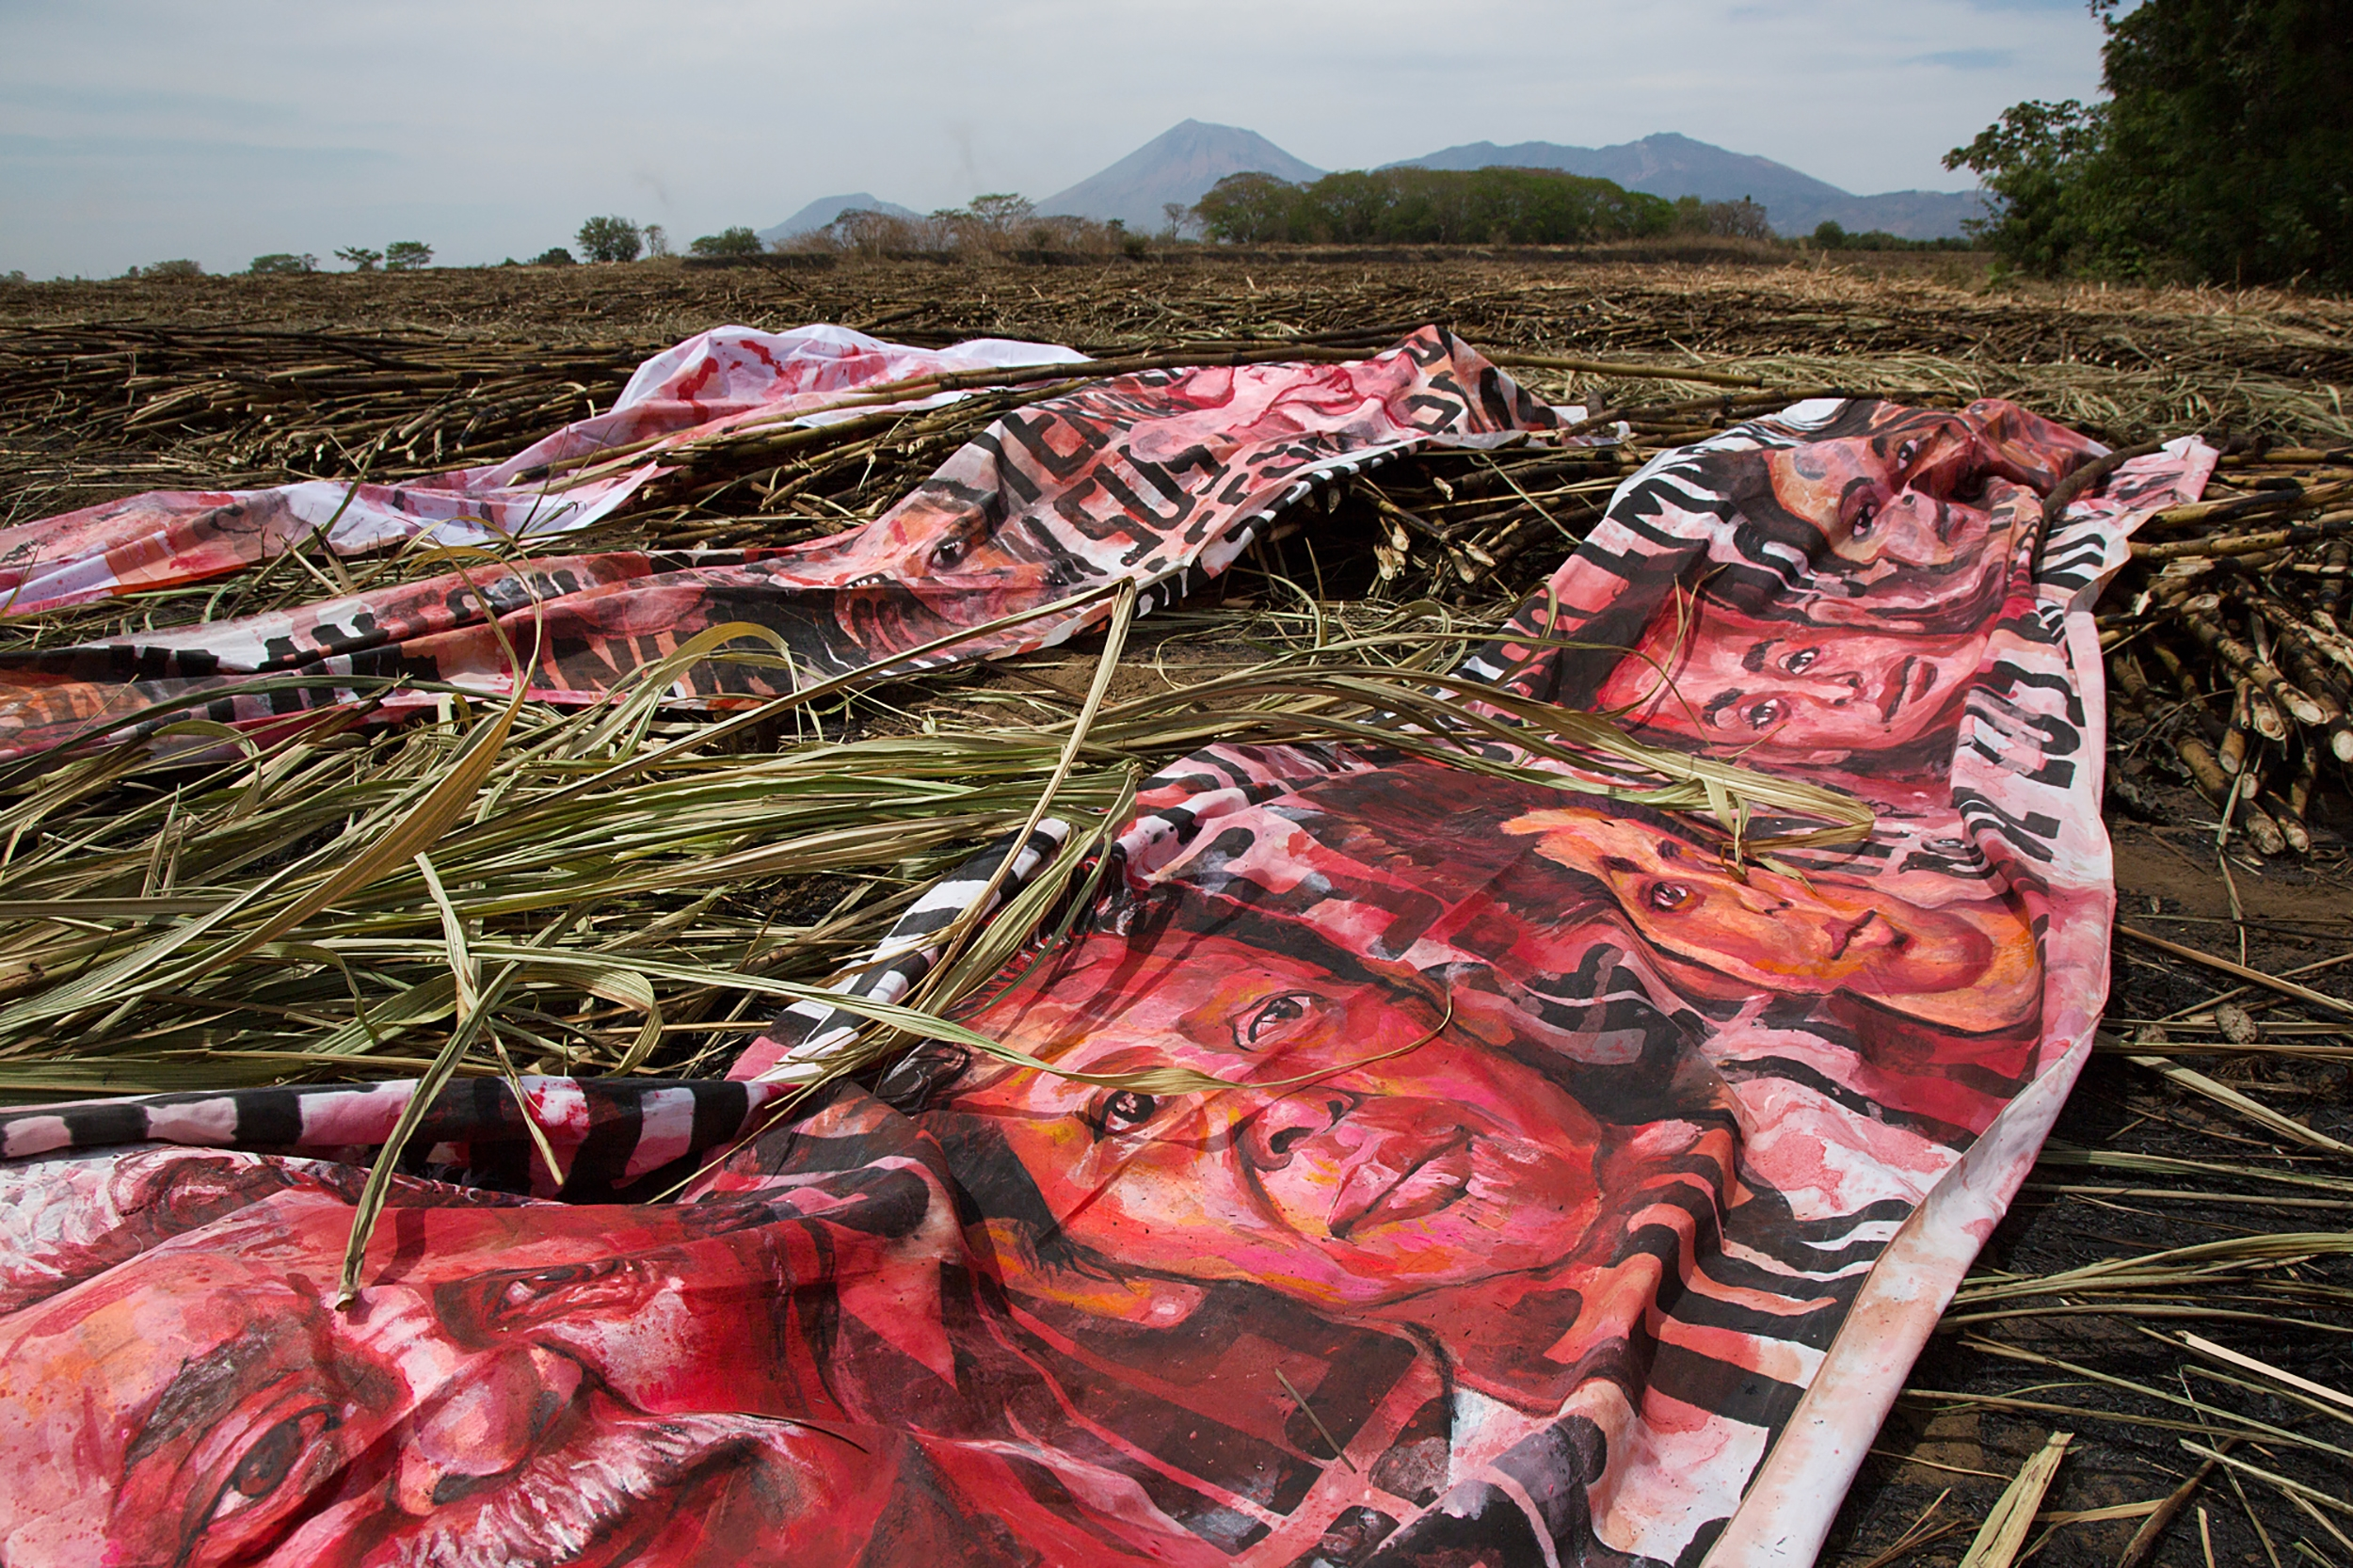 Empalagoso (Saccharine): The Chichigalpa Portrait Project, The Burnt Cane Installation. Photo courtesy of Tom Laffay.